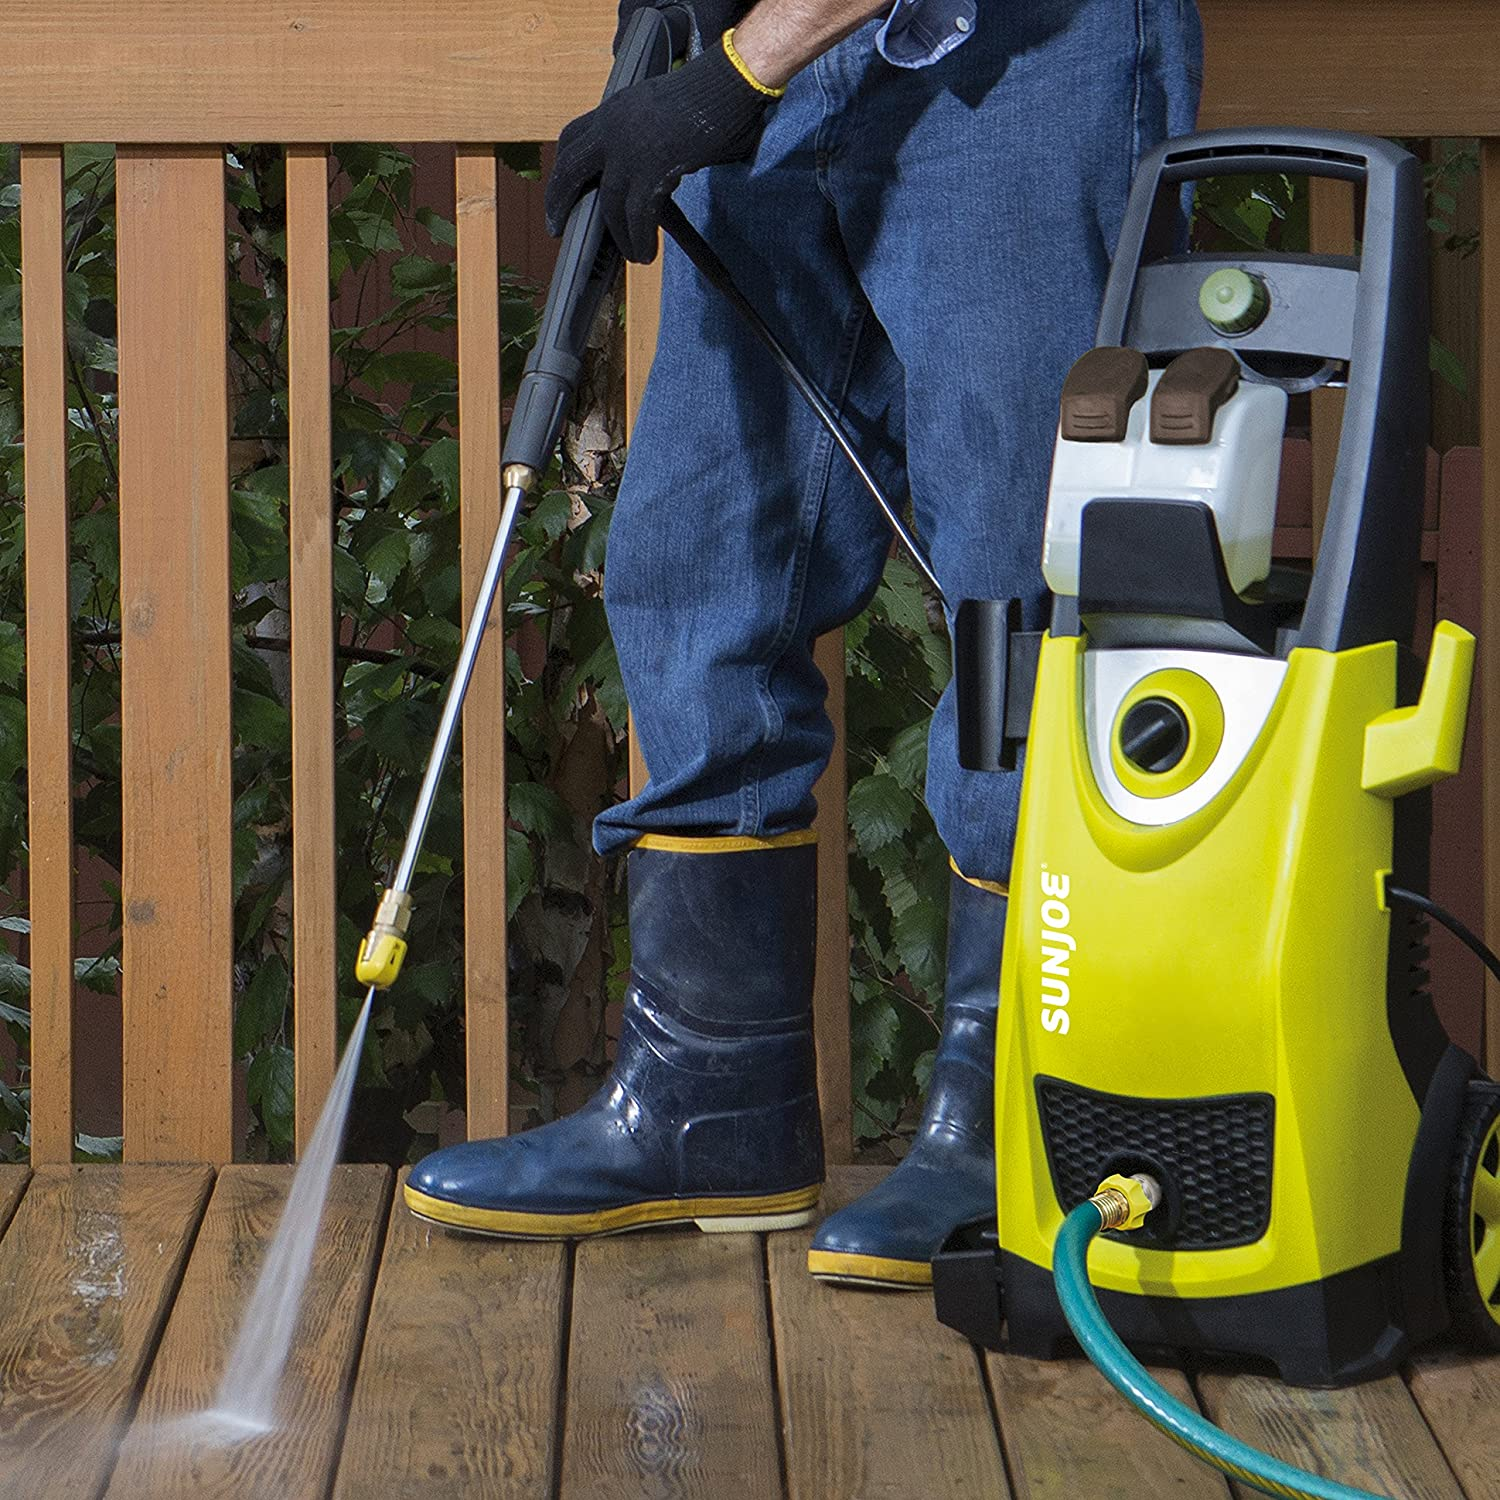 The Best Electric Pressure Washers For Your Garden: Reviews & Buying Guide 2